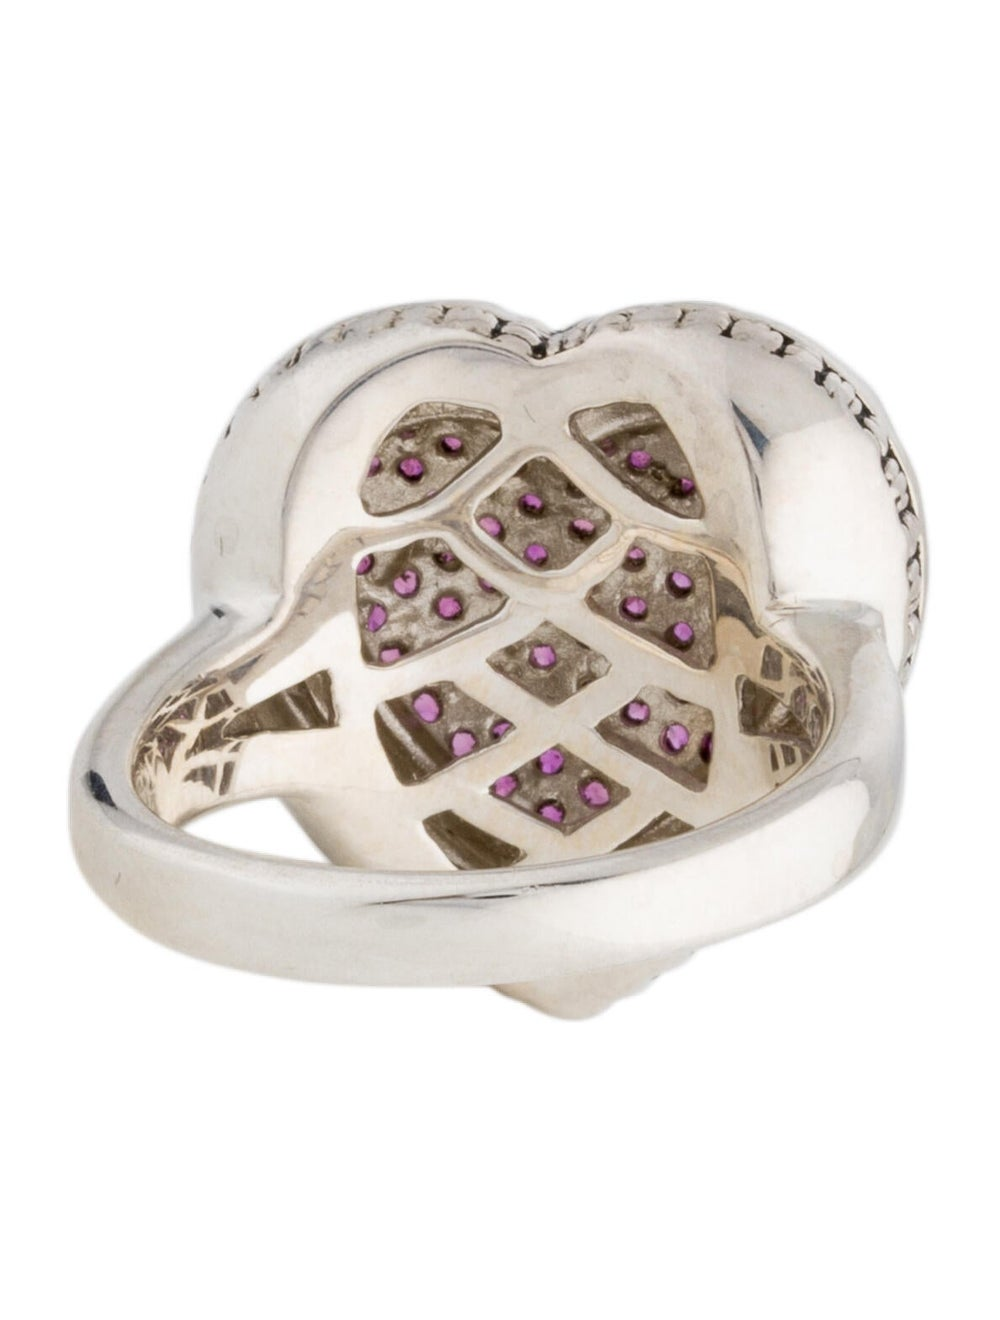 Lali Jewels Ruby Cocktail Ring silver - image 4